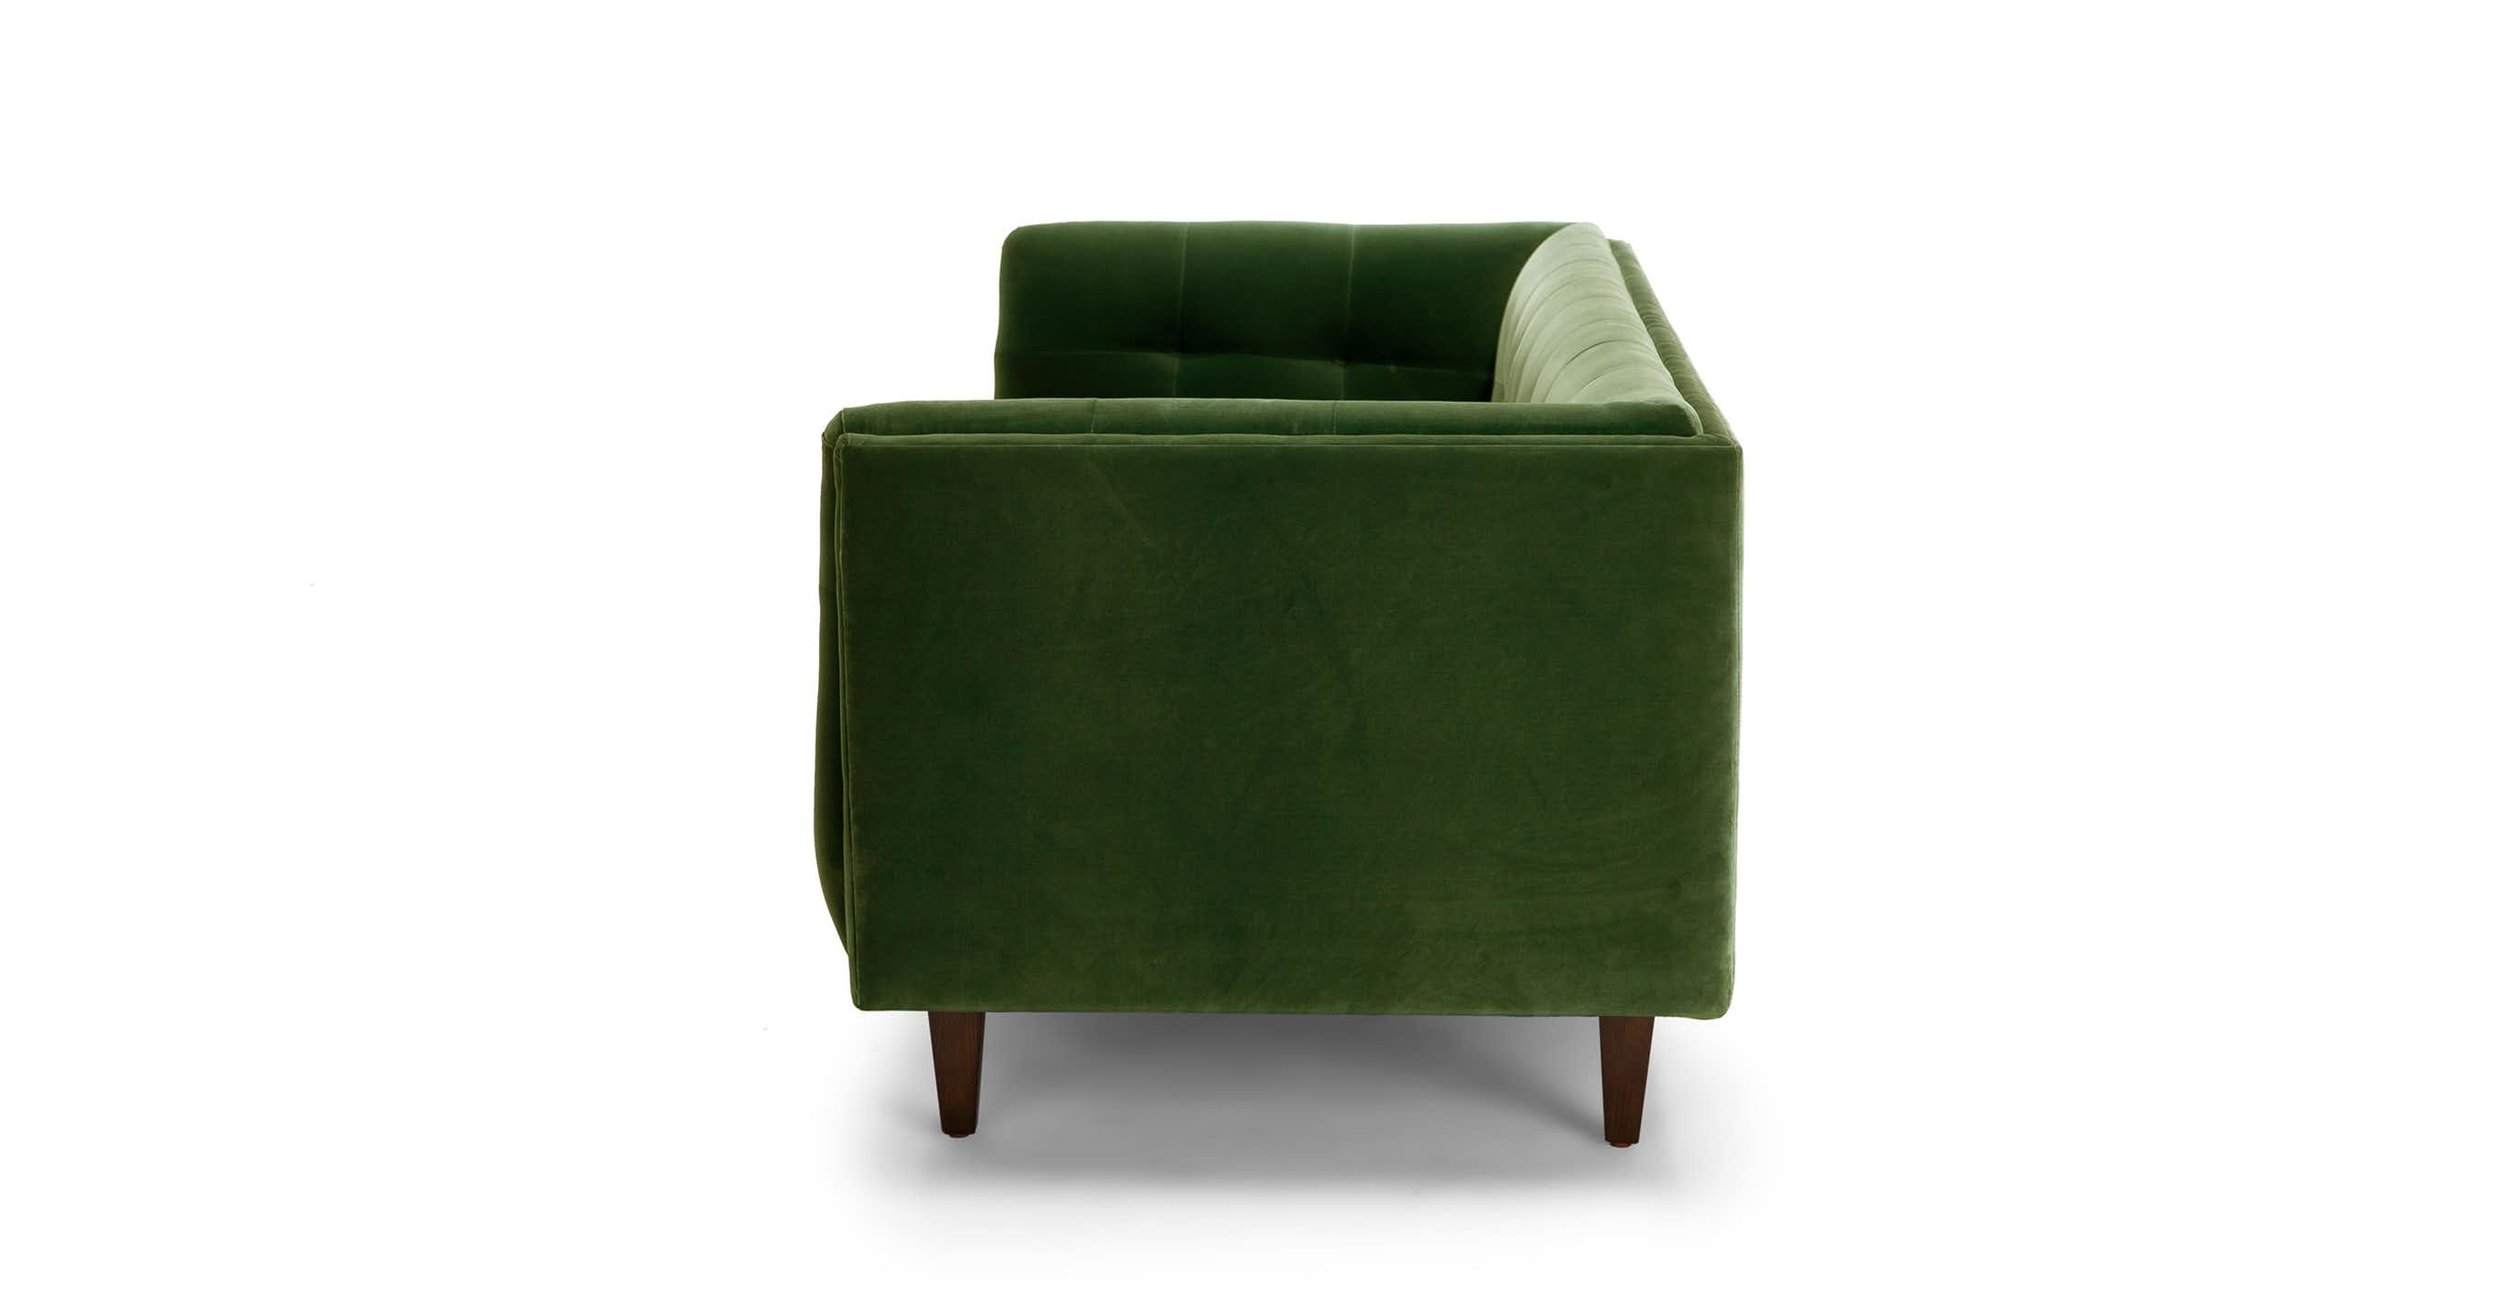 Cirrus Grass Green Sofa $1,000